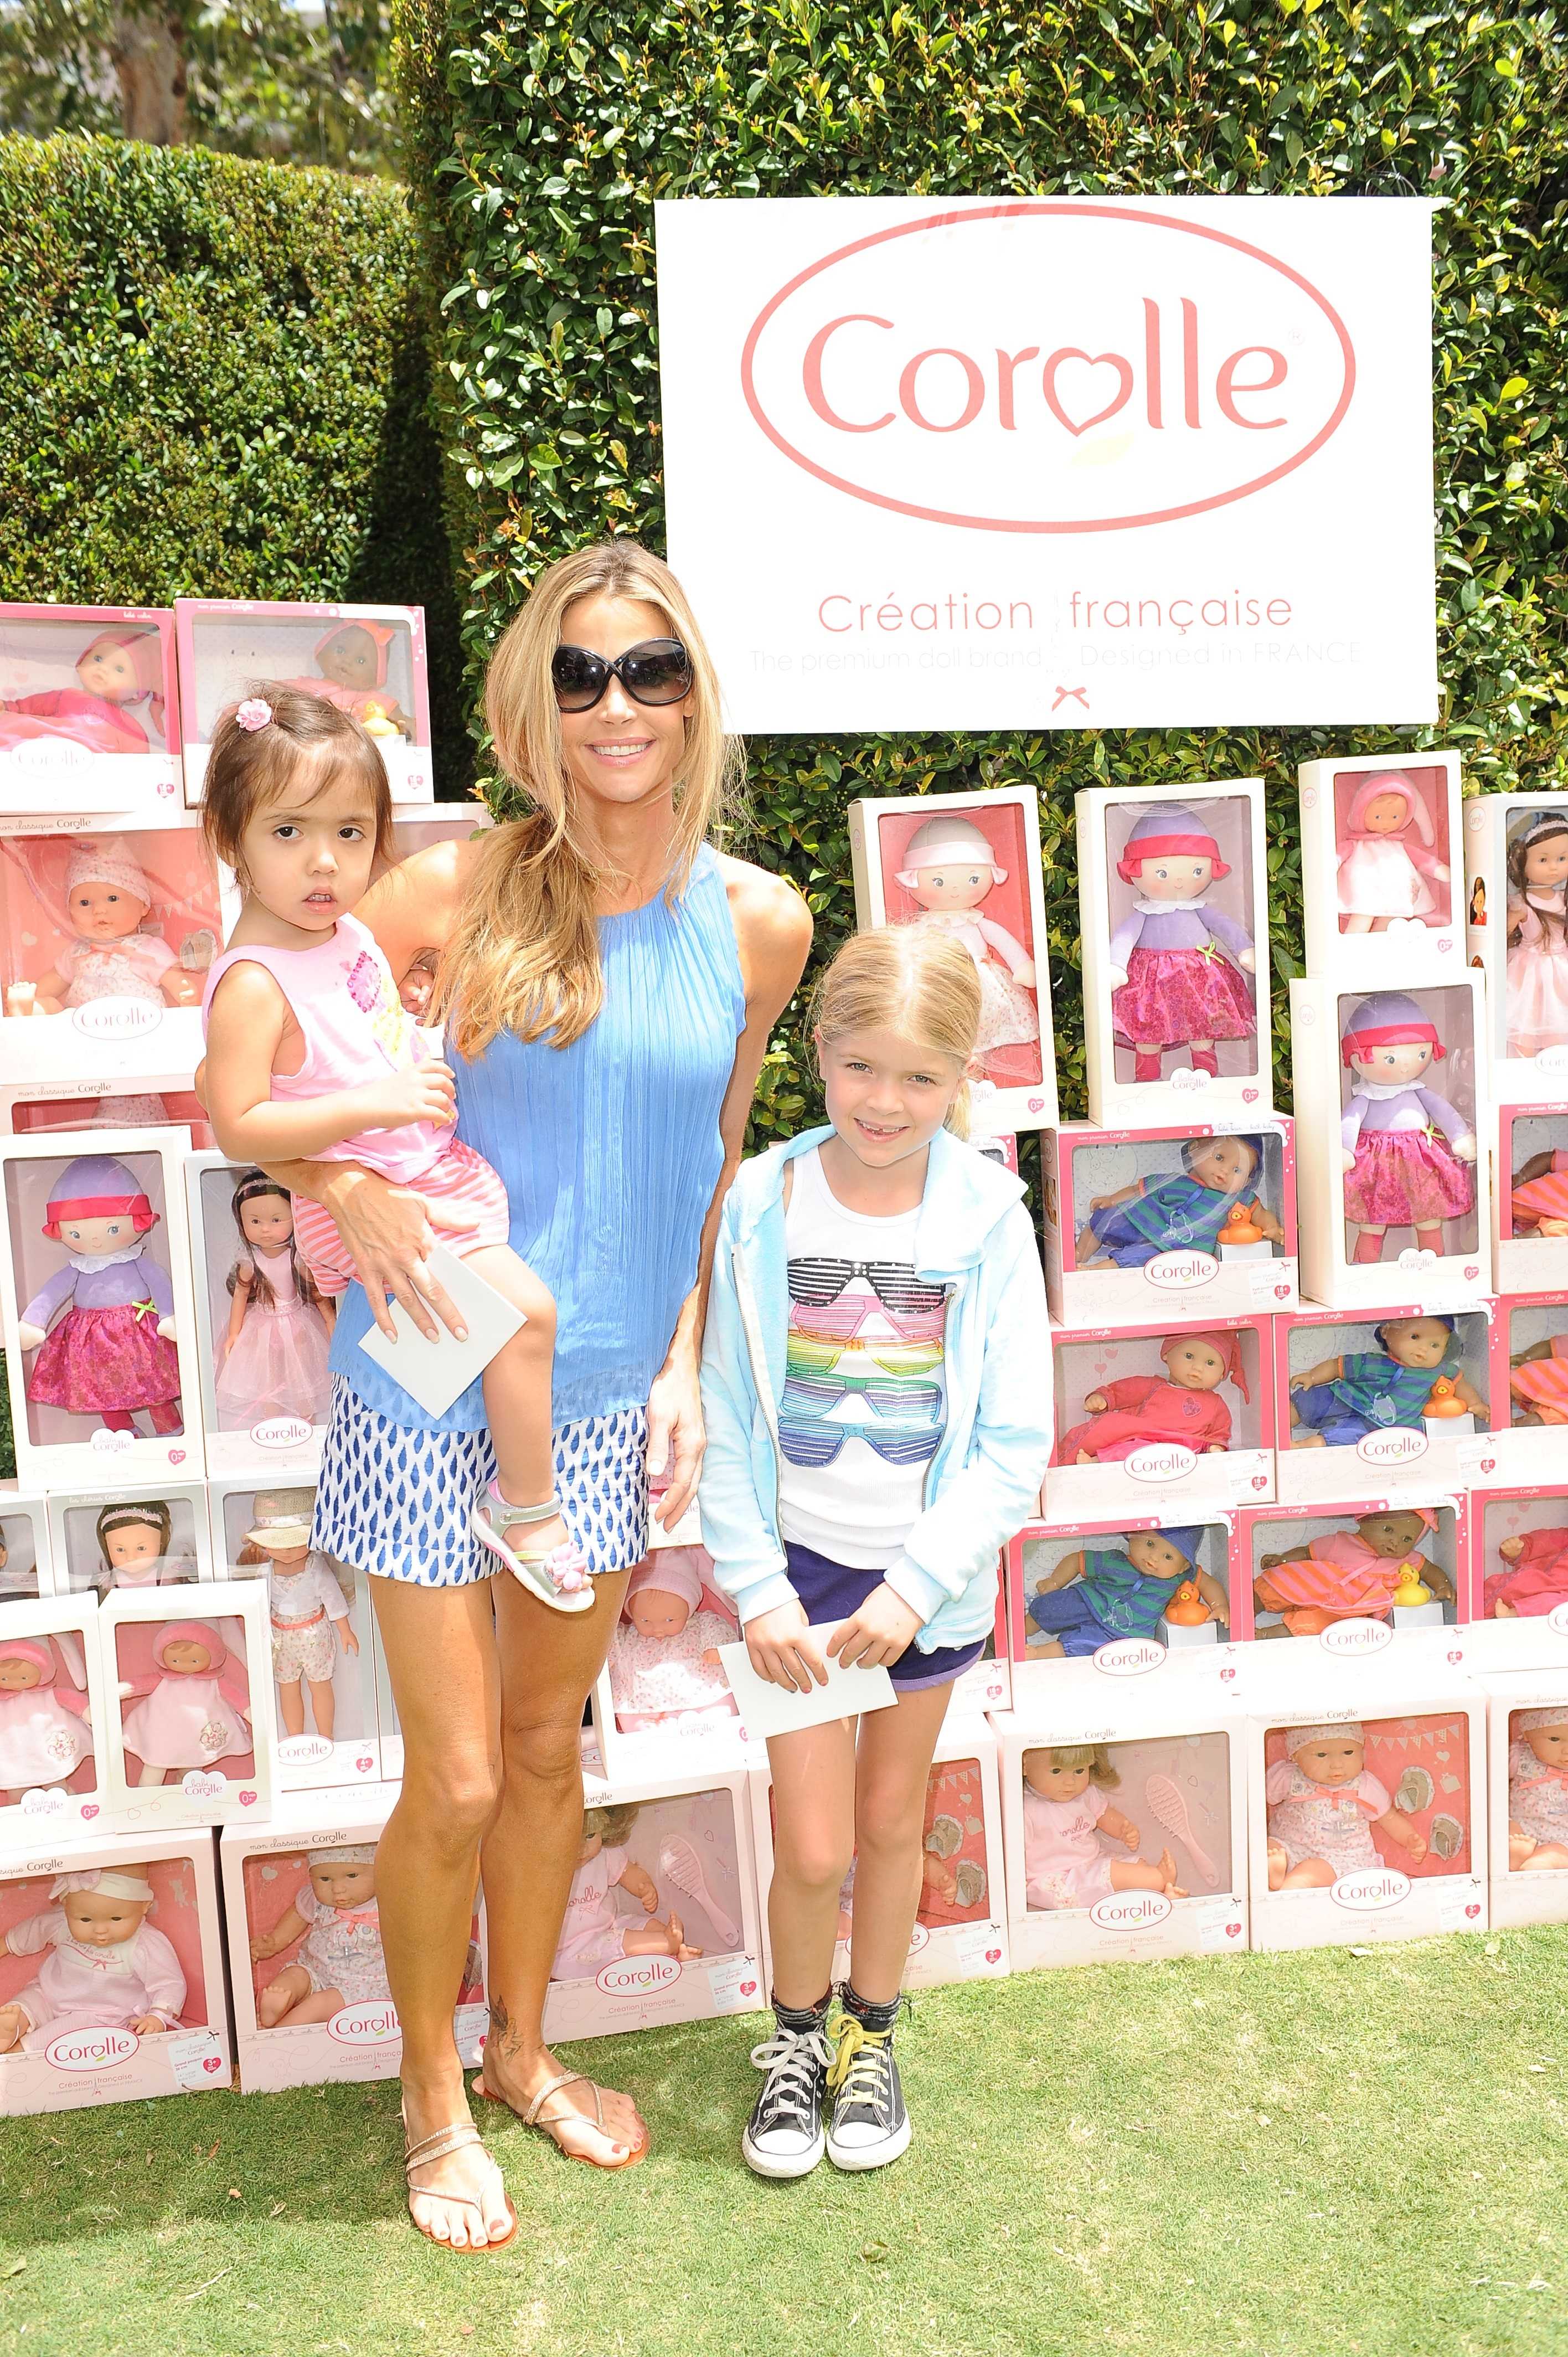 denise richards custody twins charlie sheen brooke mueller rehab addiction